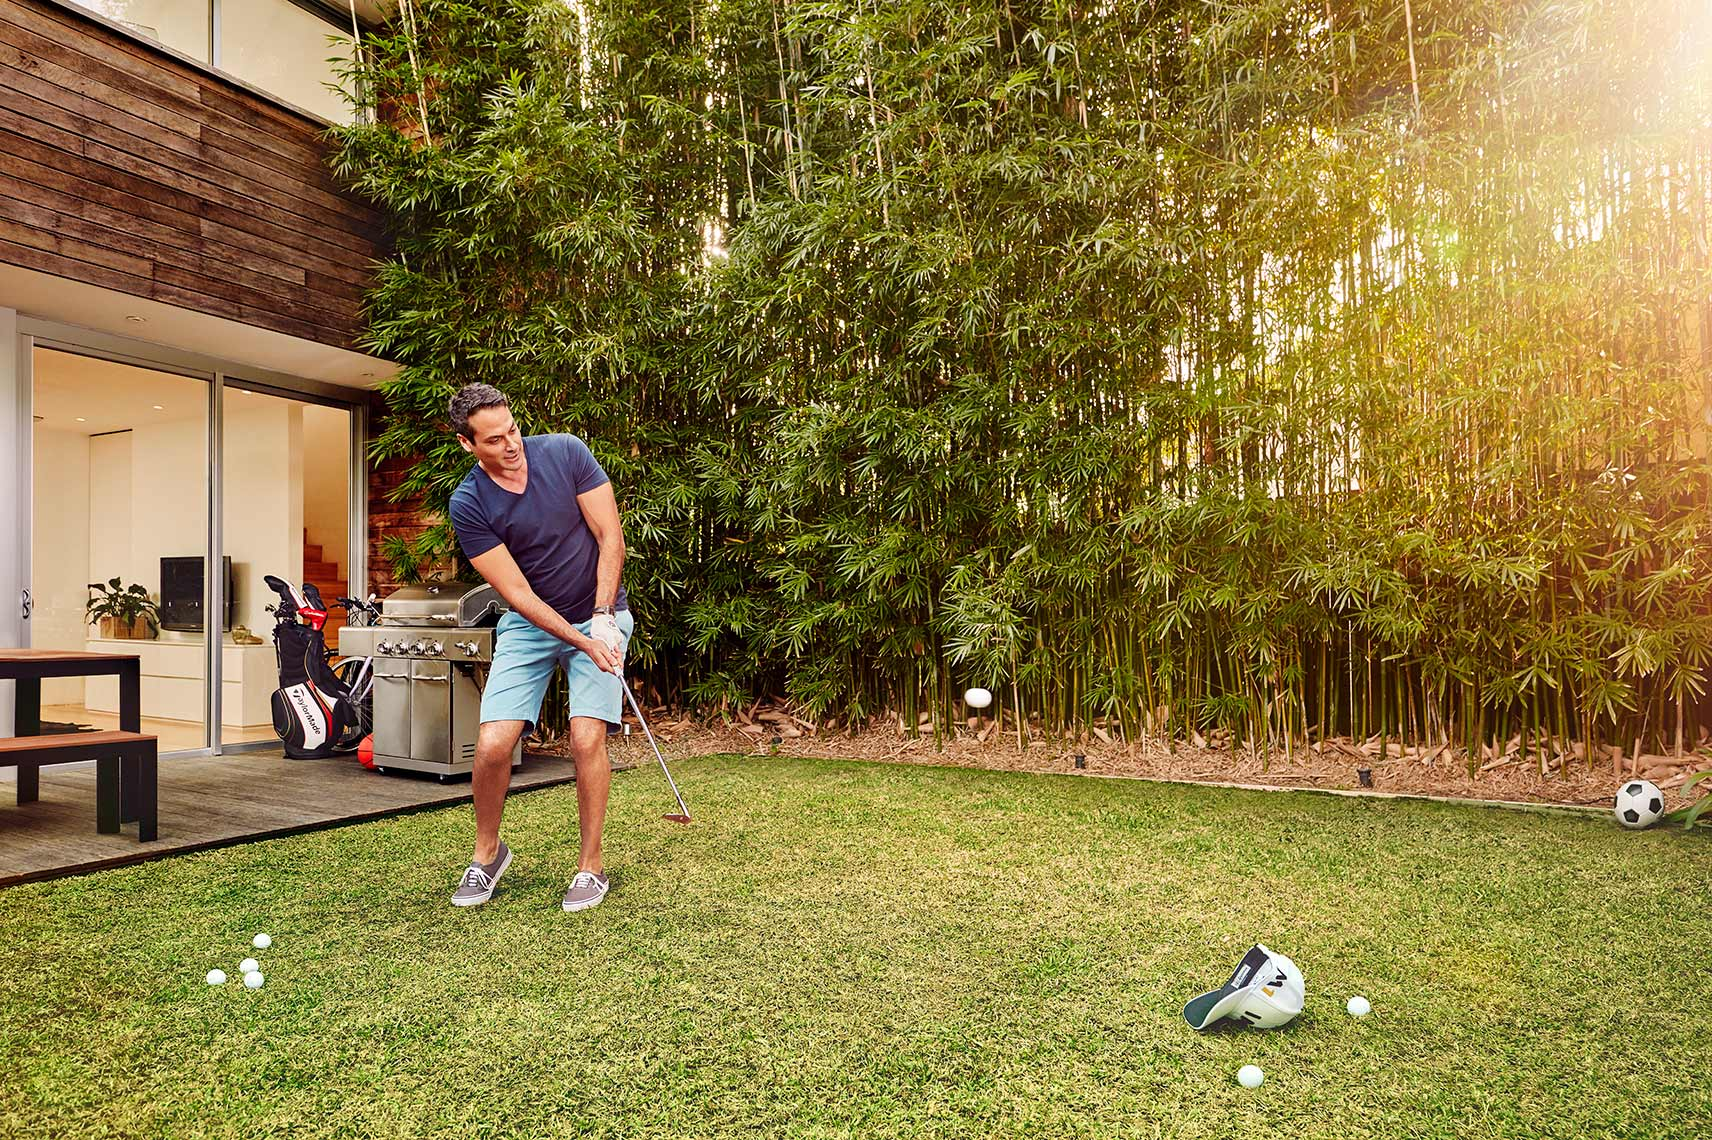 ADAM-TAYLOR-QANTAS-GOLF-BACKYARD-01